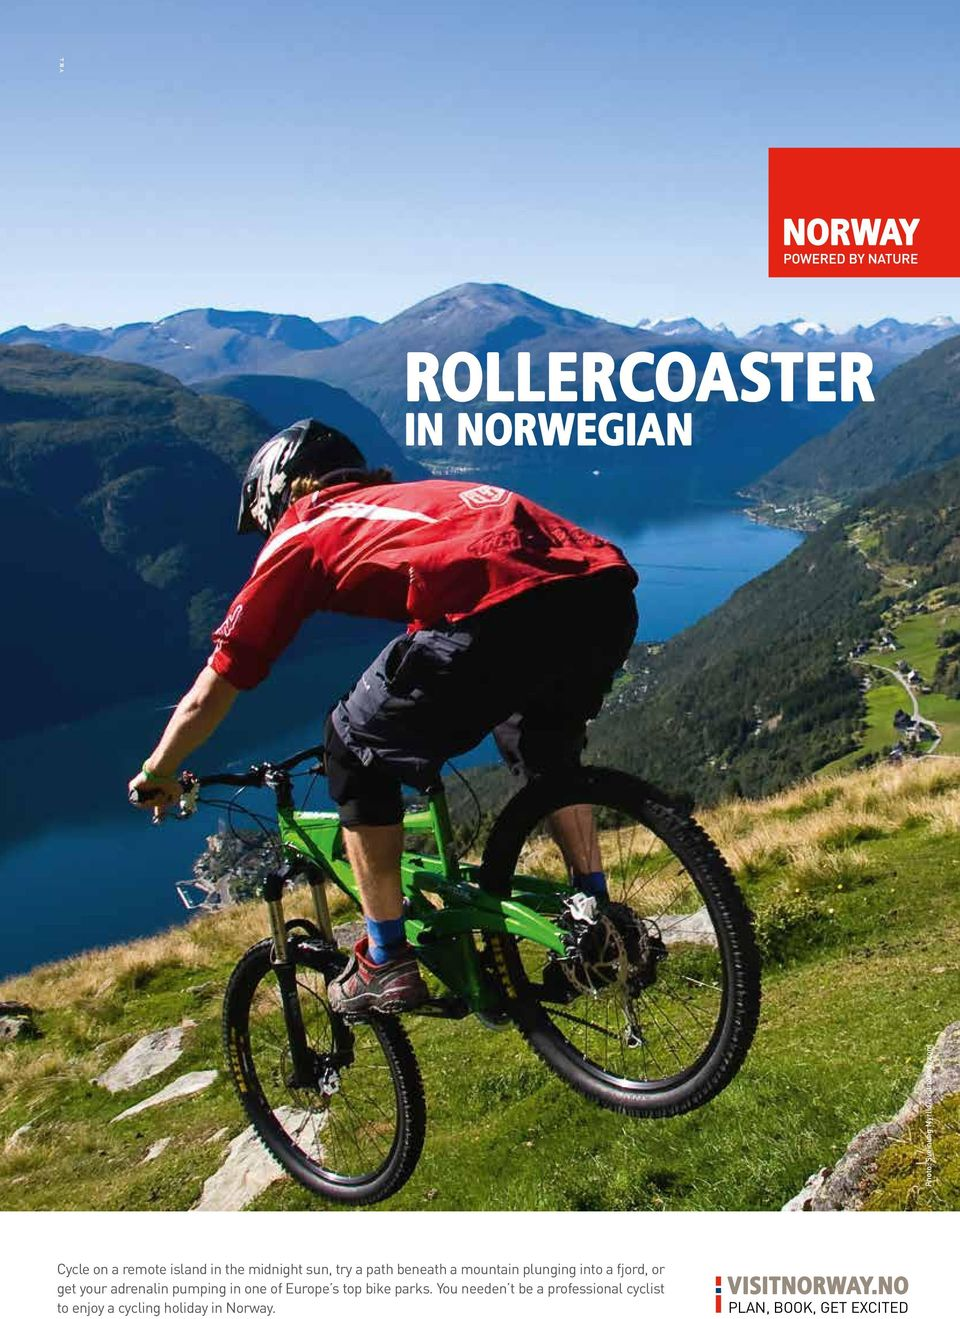 plunging into a fjord, or get your adrenalin pumping in one of Europe s top bike